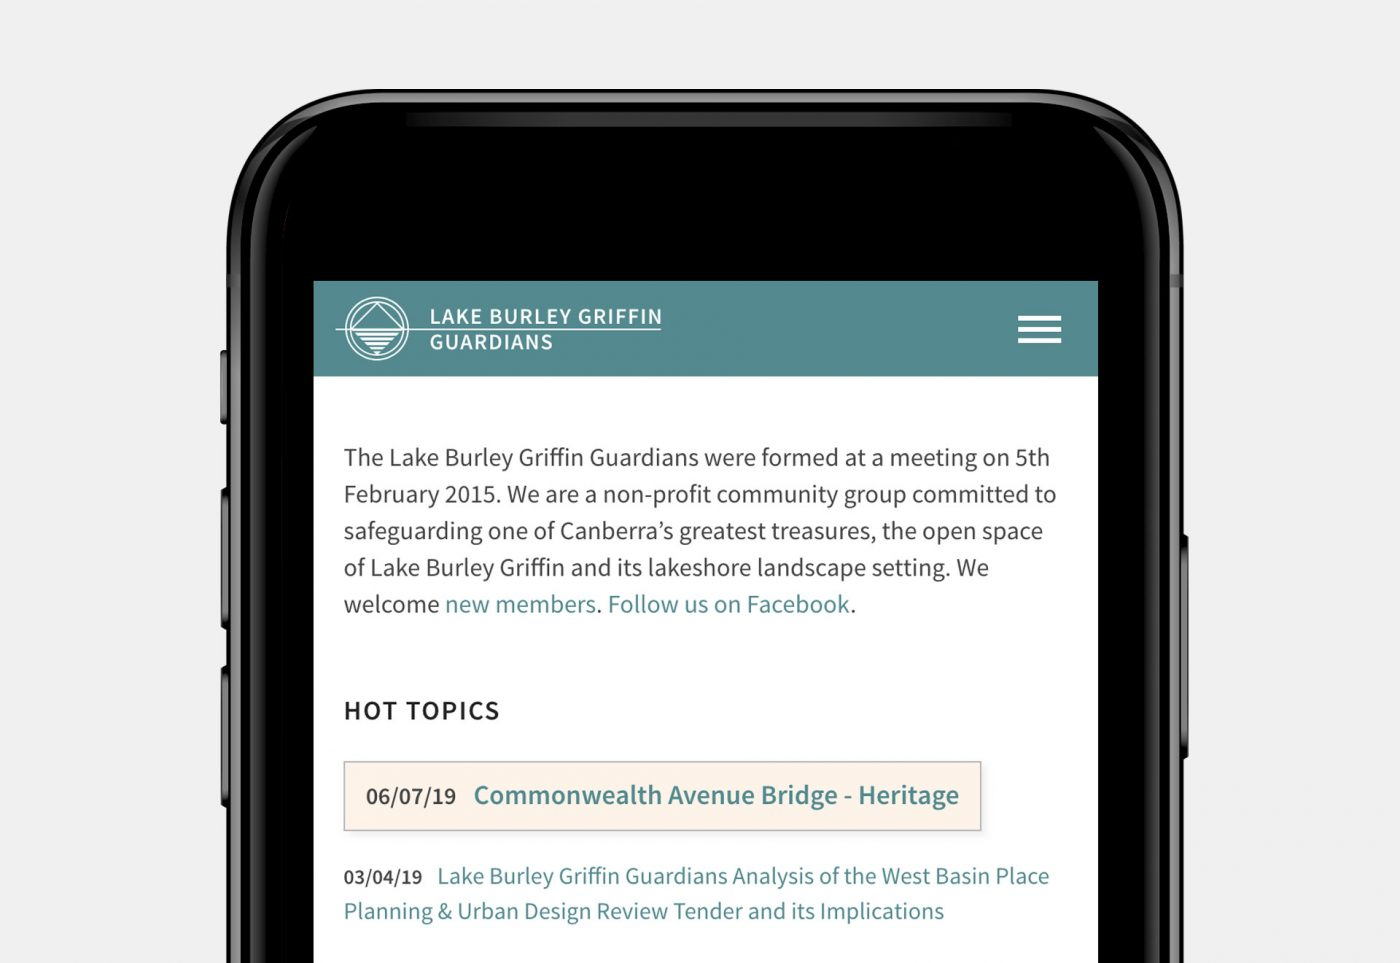 Lake Burley Griffin Guardians article page mobile view